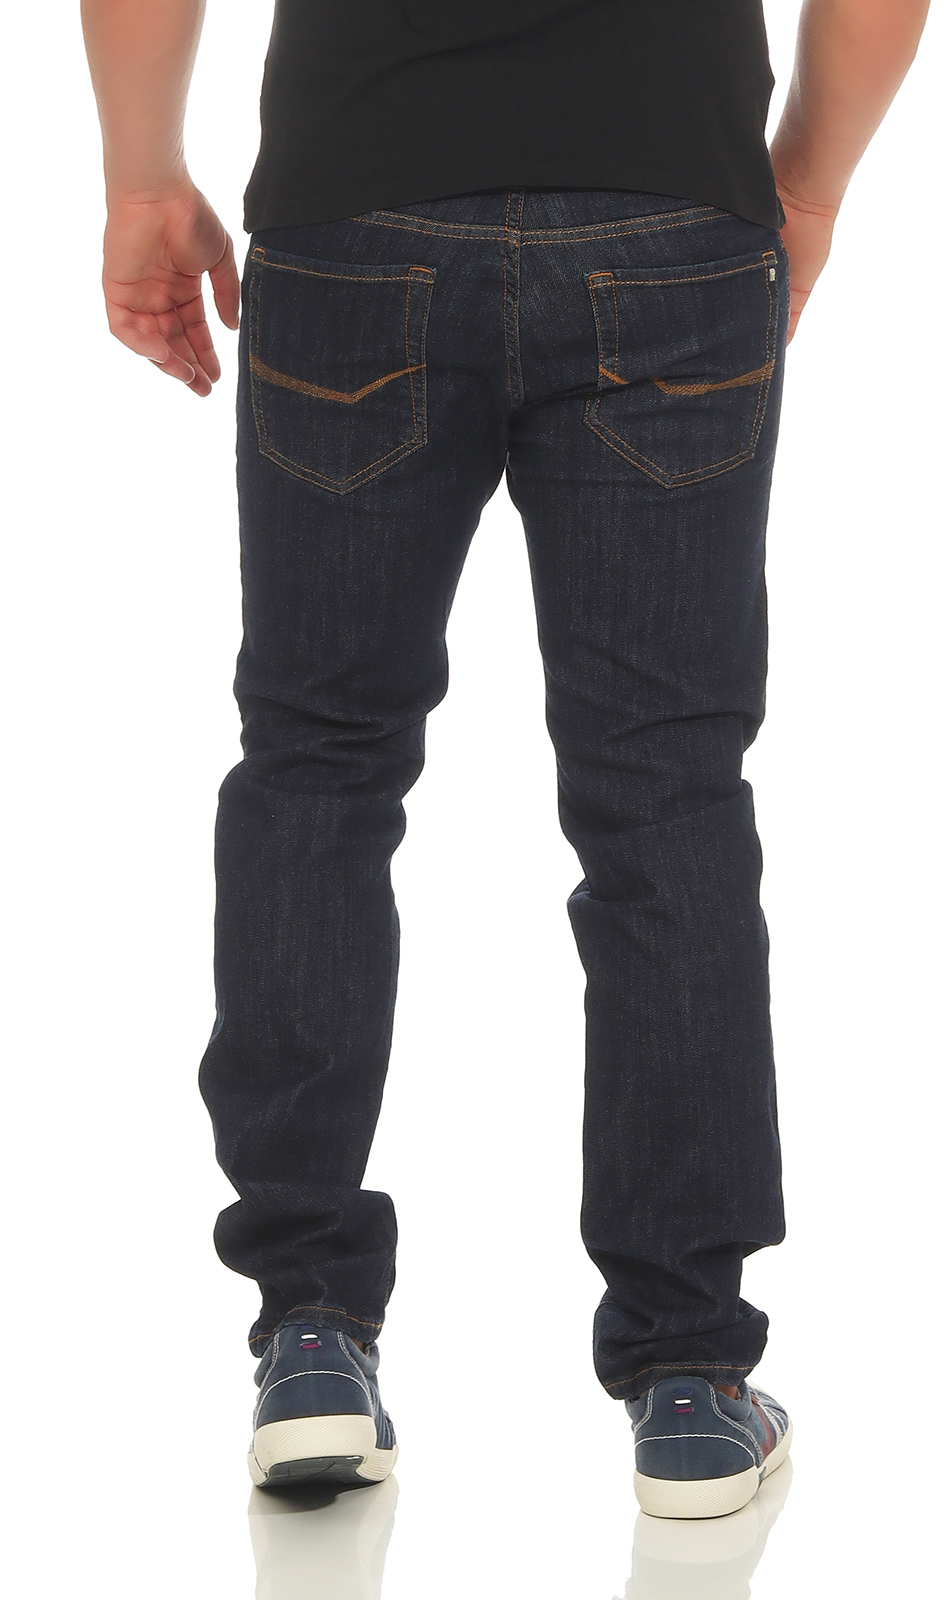 PIERRE-CARDIN-Herren-Jeans-Lyon-Hose-Tapered-Future-Flex-Super-Stretch-Premium-3 Indexbild 4